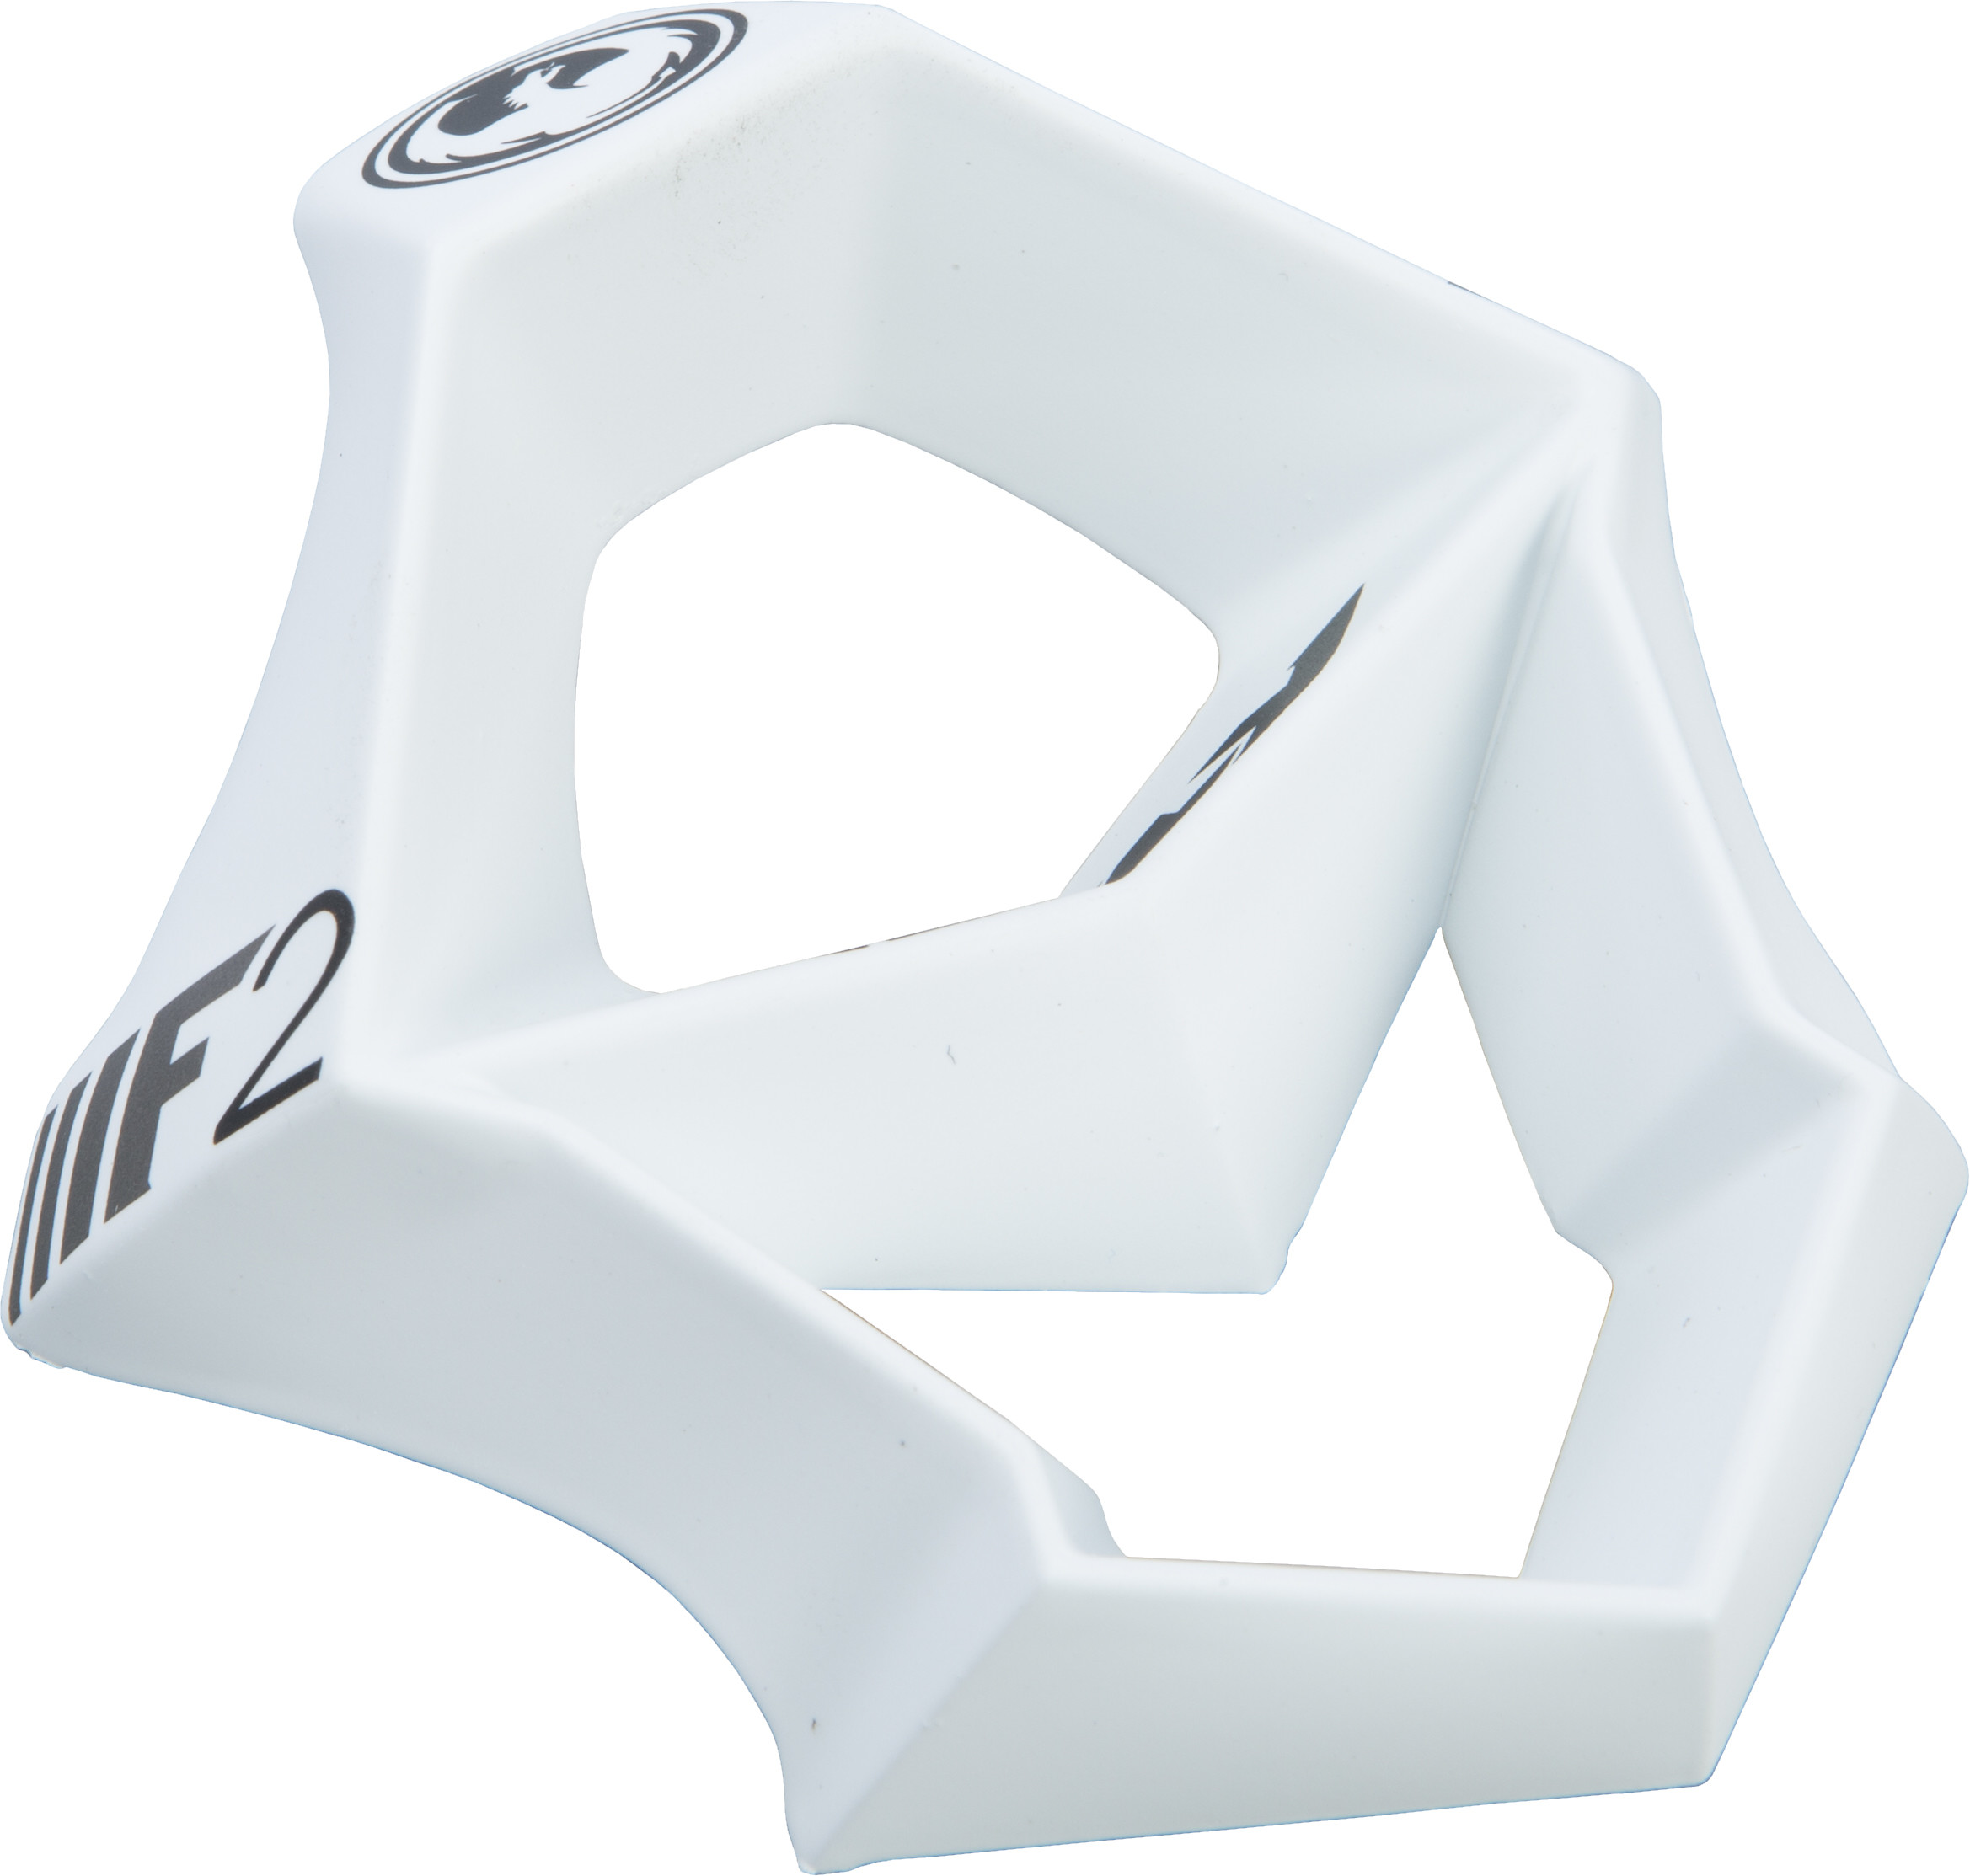 F2 Carbon Dragon Helmet Mouthpiece